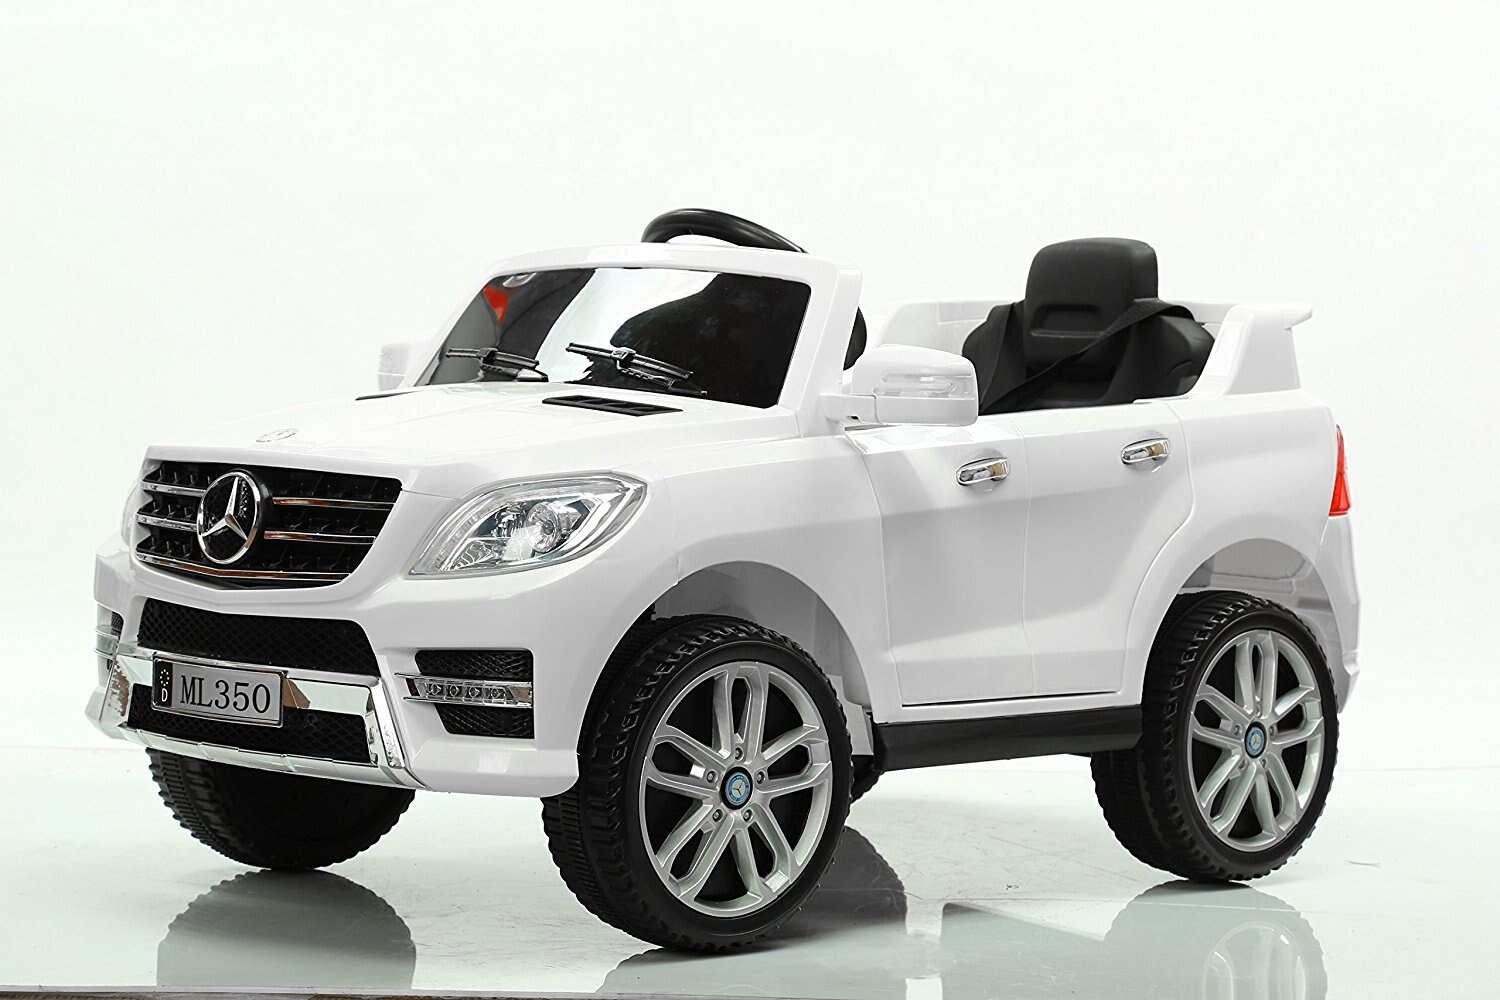 Mercedes Power Wheels >> Electric Ride On Car Mercedes Ml350 12v For Kids Mp3 Remote Control White